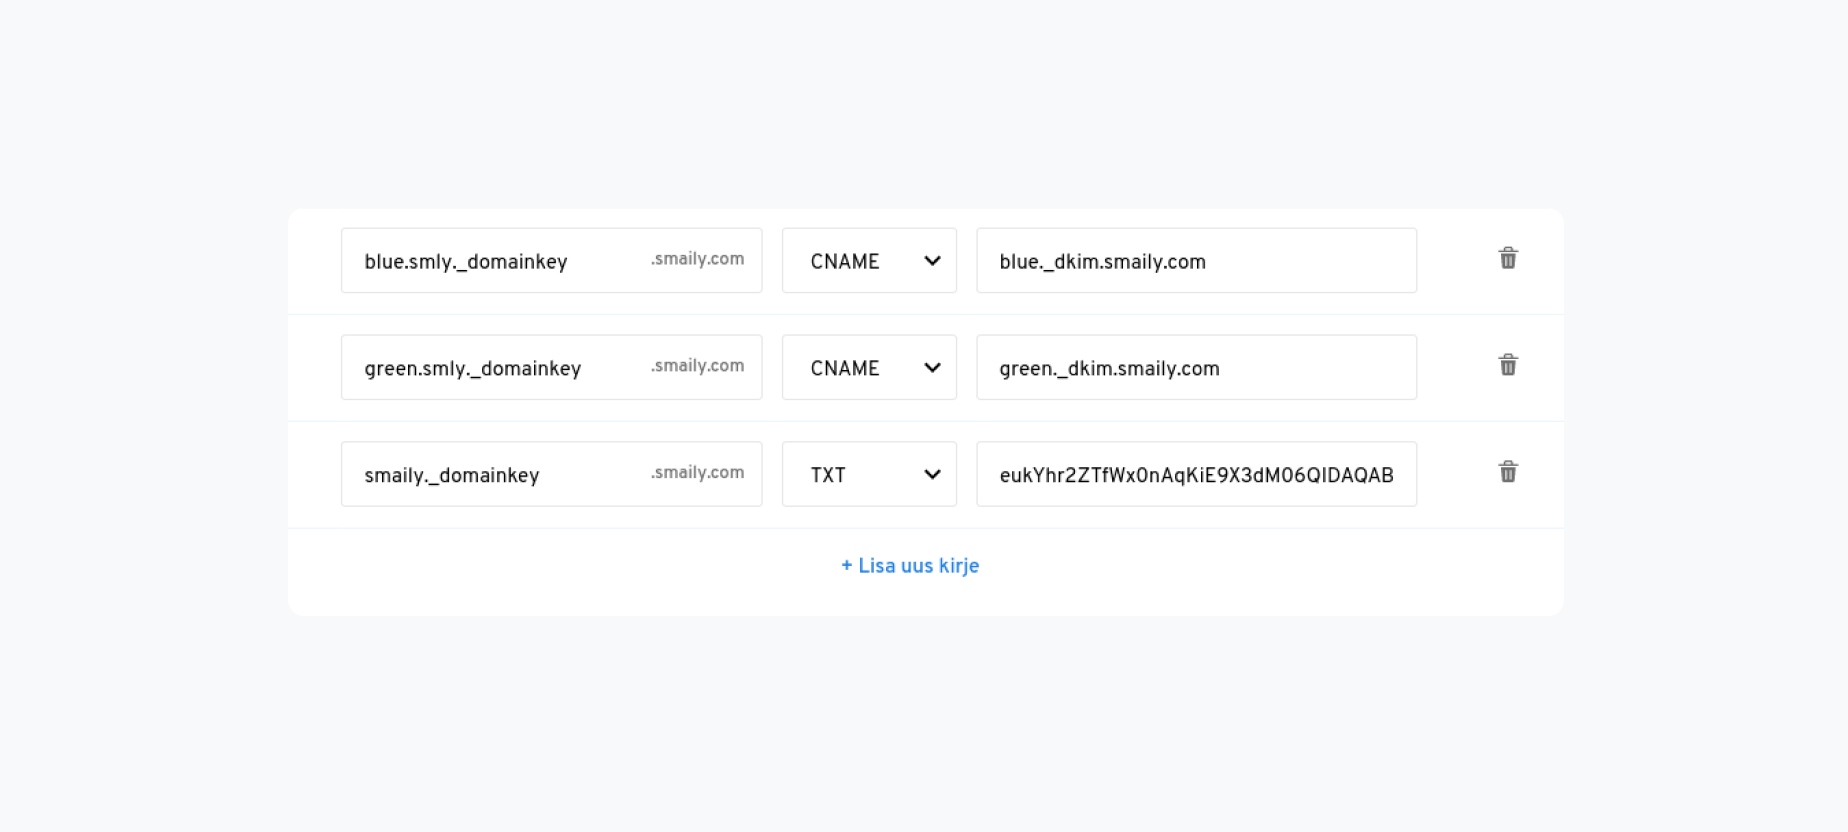 Adding SPF and DKIM records to domains